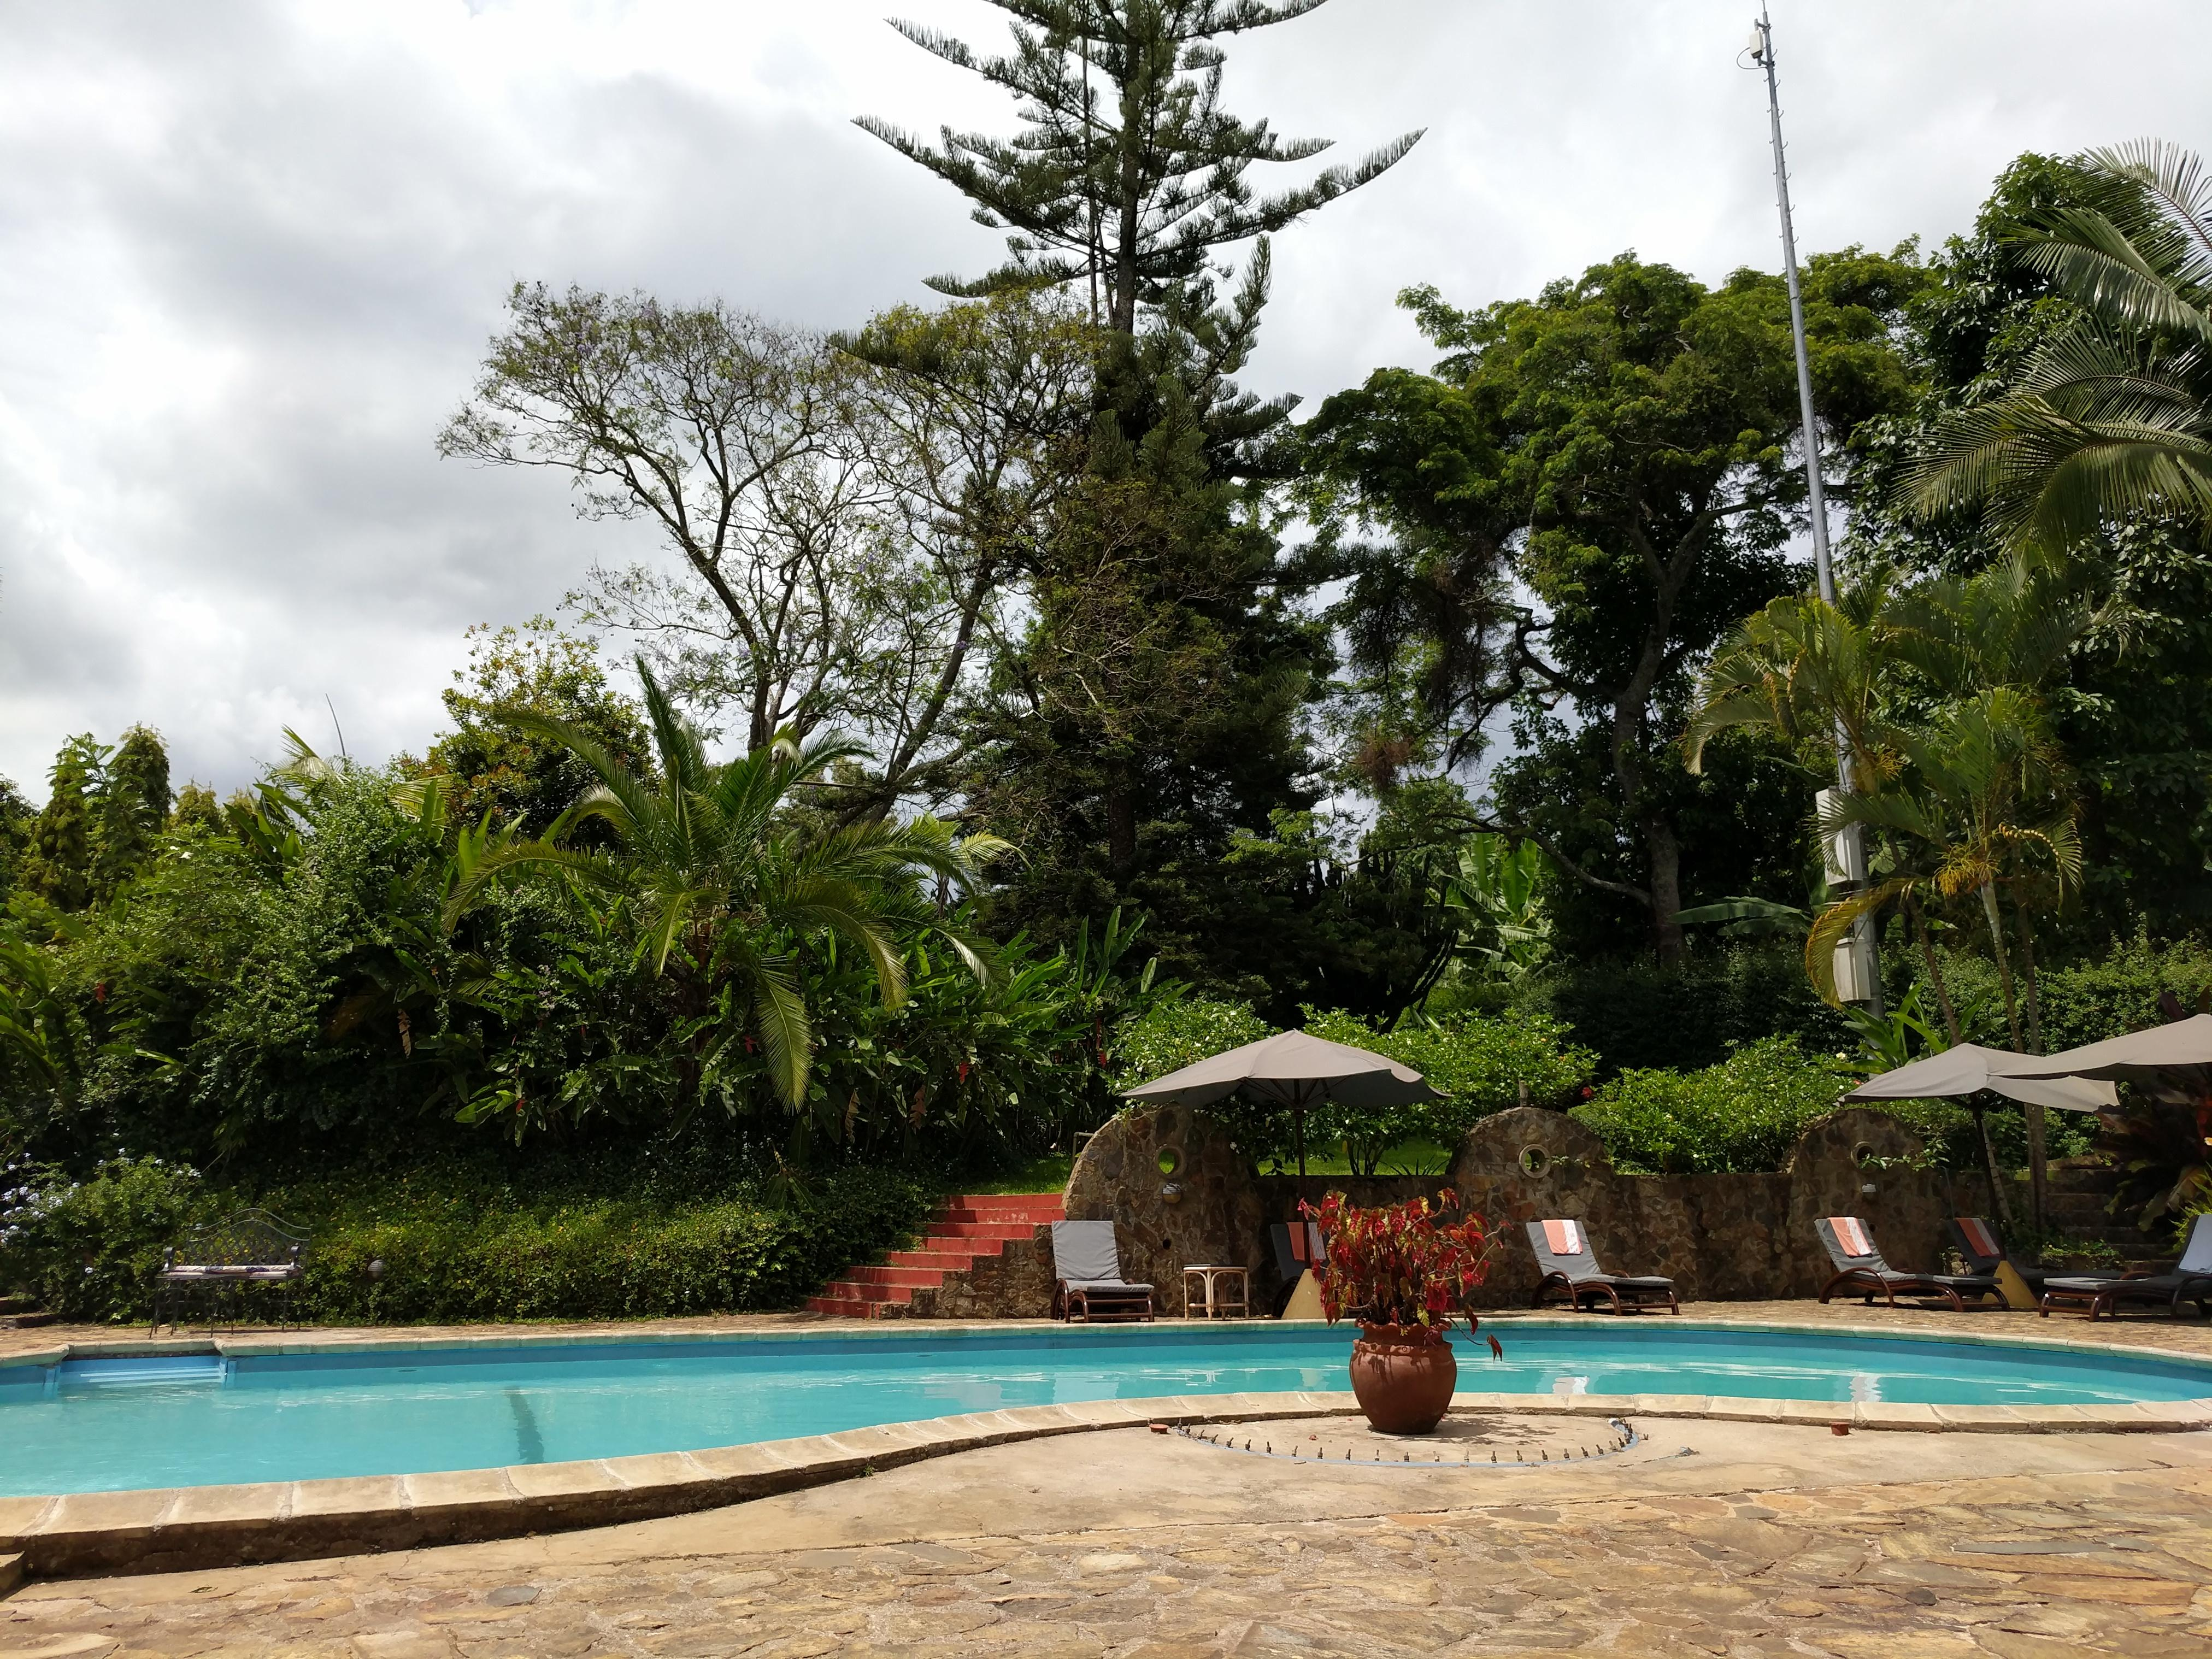 Pool Garten Hessen Aishi Machame Hotel Hotel Reviews Expedia